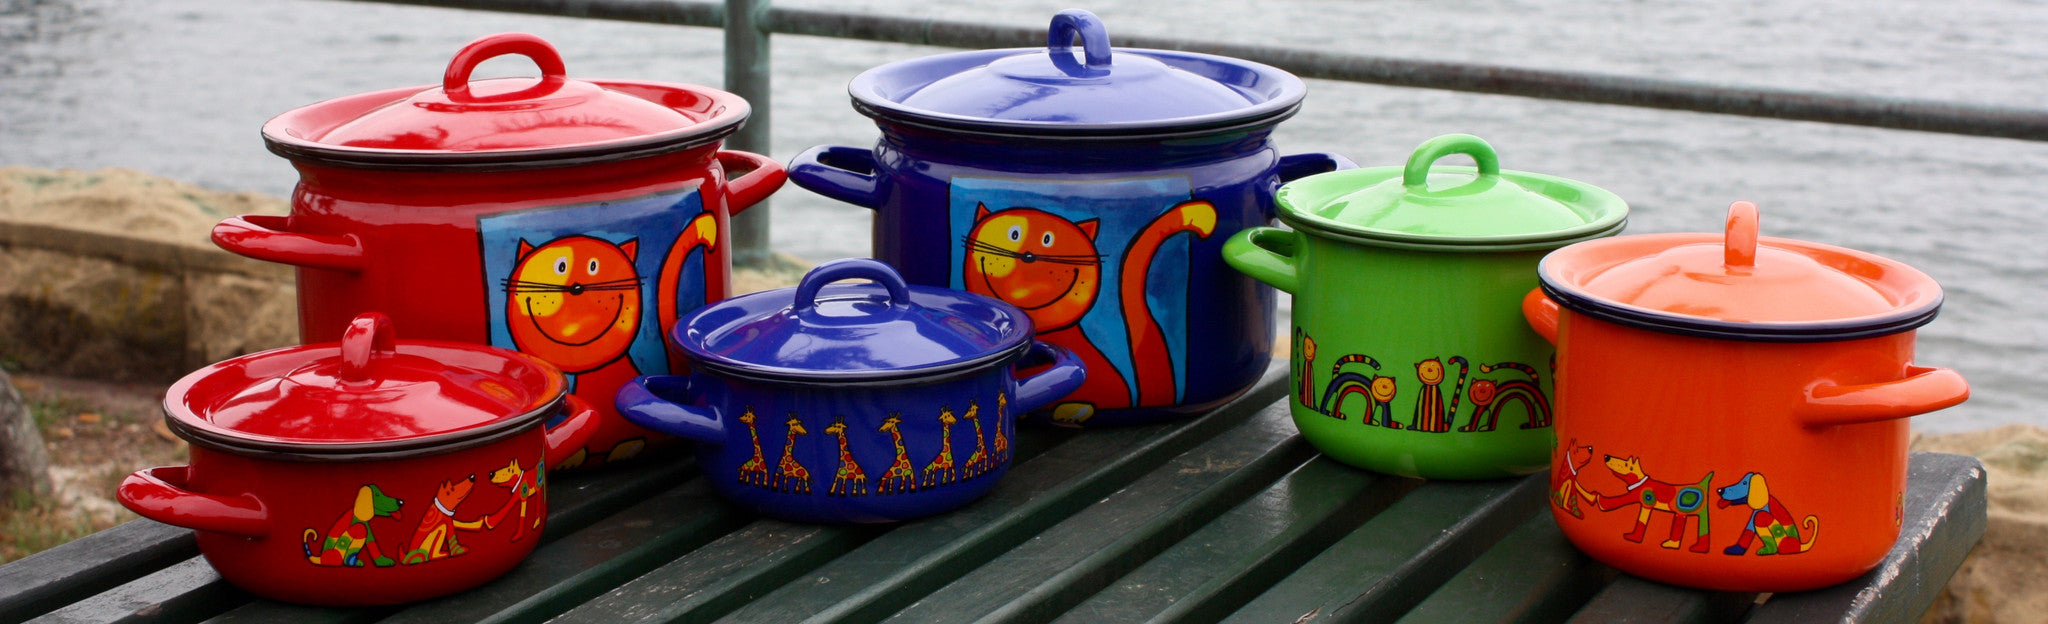 Rainbow tongue enamelware cooking pots